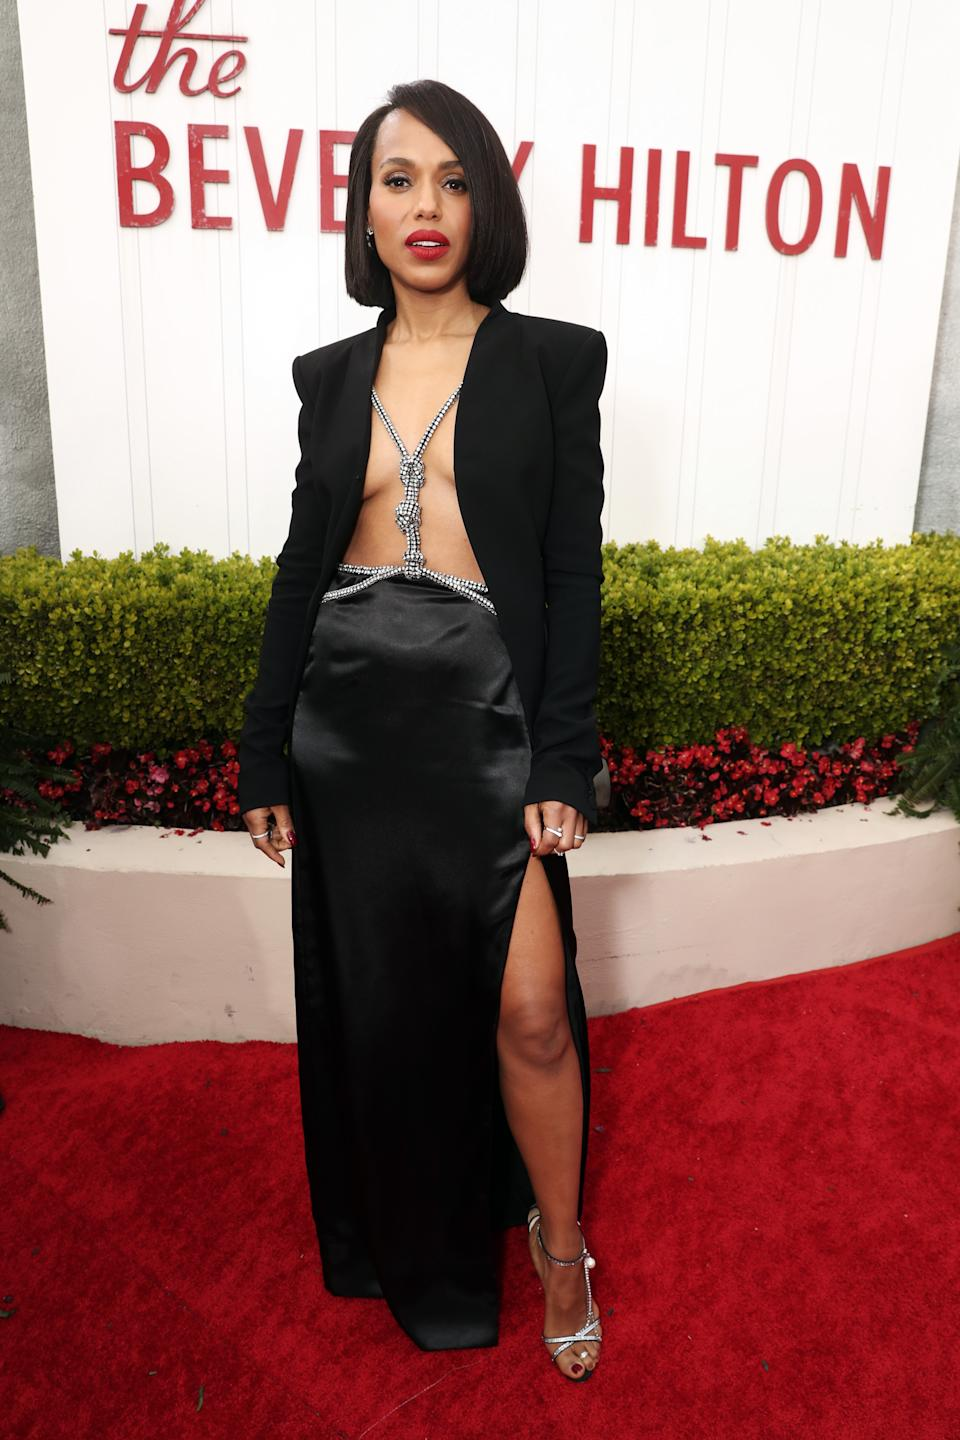 Washington made jaws drop as she arrived on the red carpet in an open blazer, and black skirt with a high-high slit. (Photo by: Todd Williamson/NBC/NBCU Photo Bank via Getty Images)